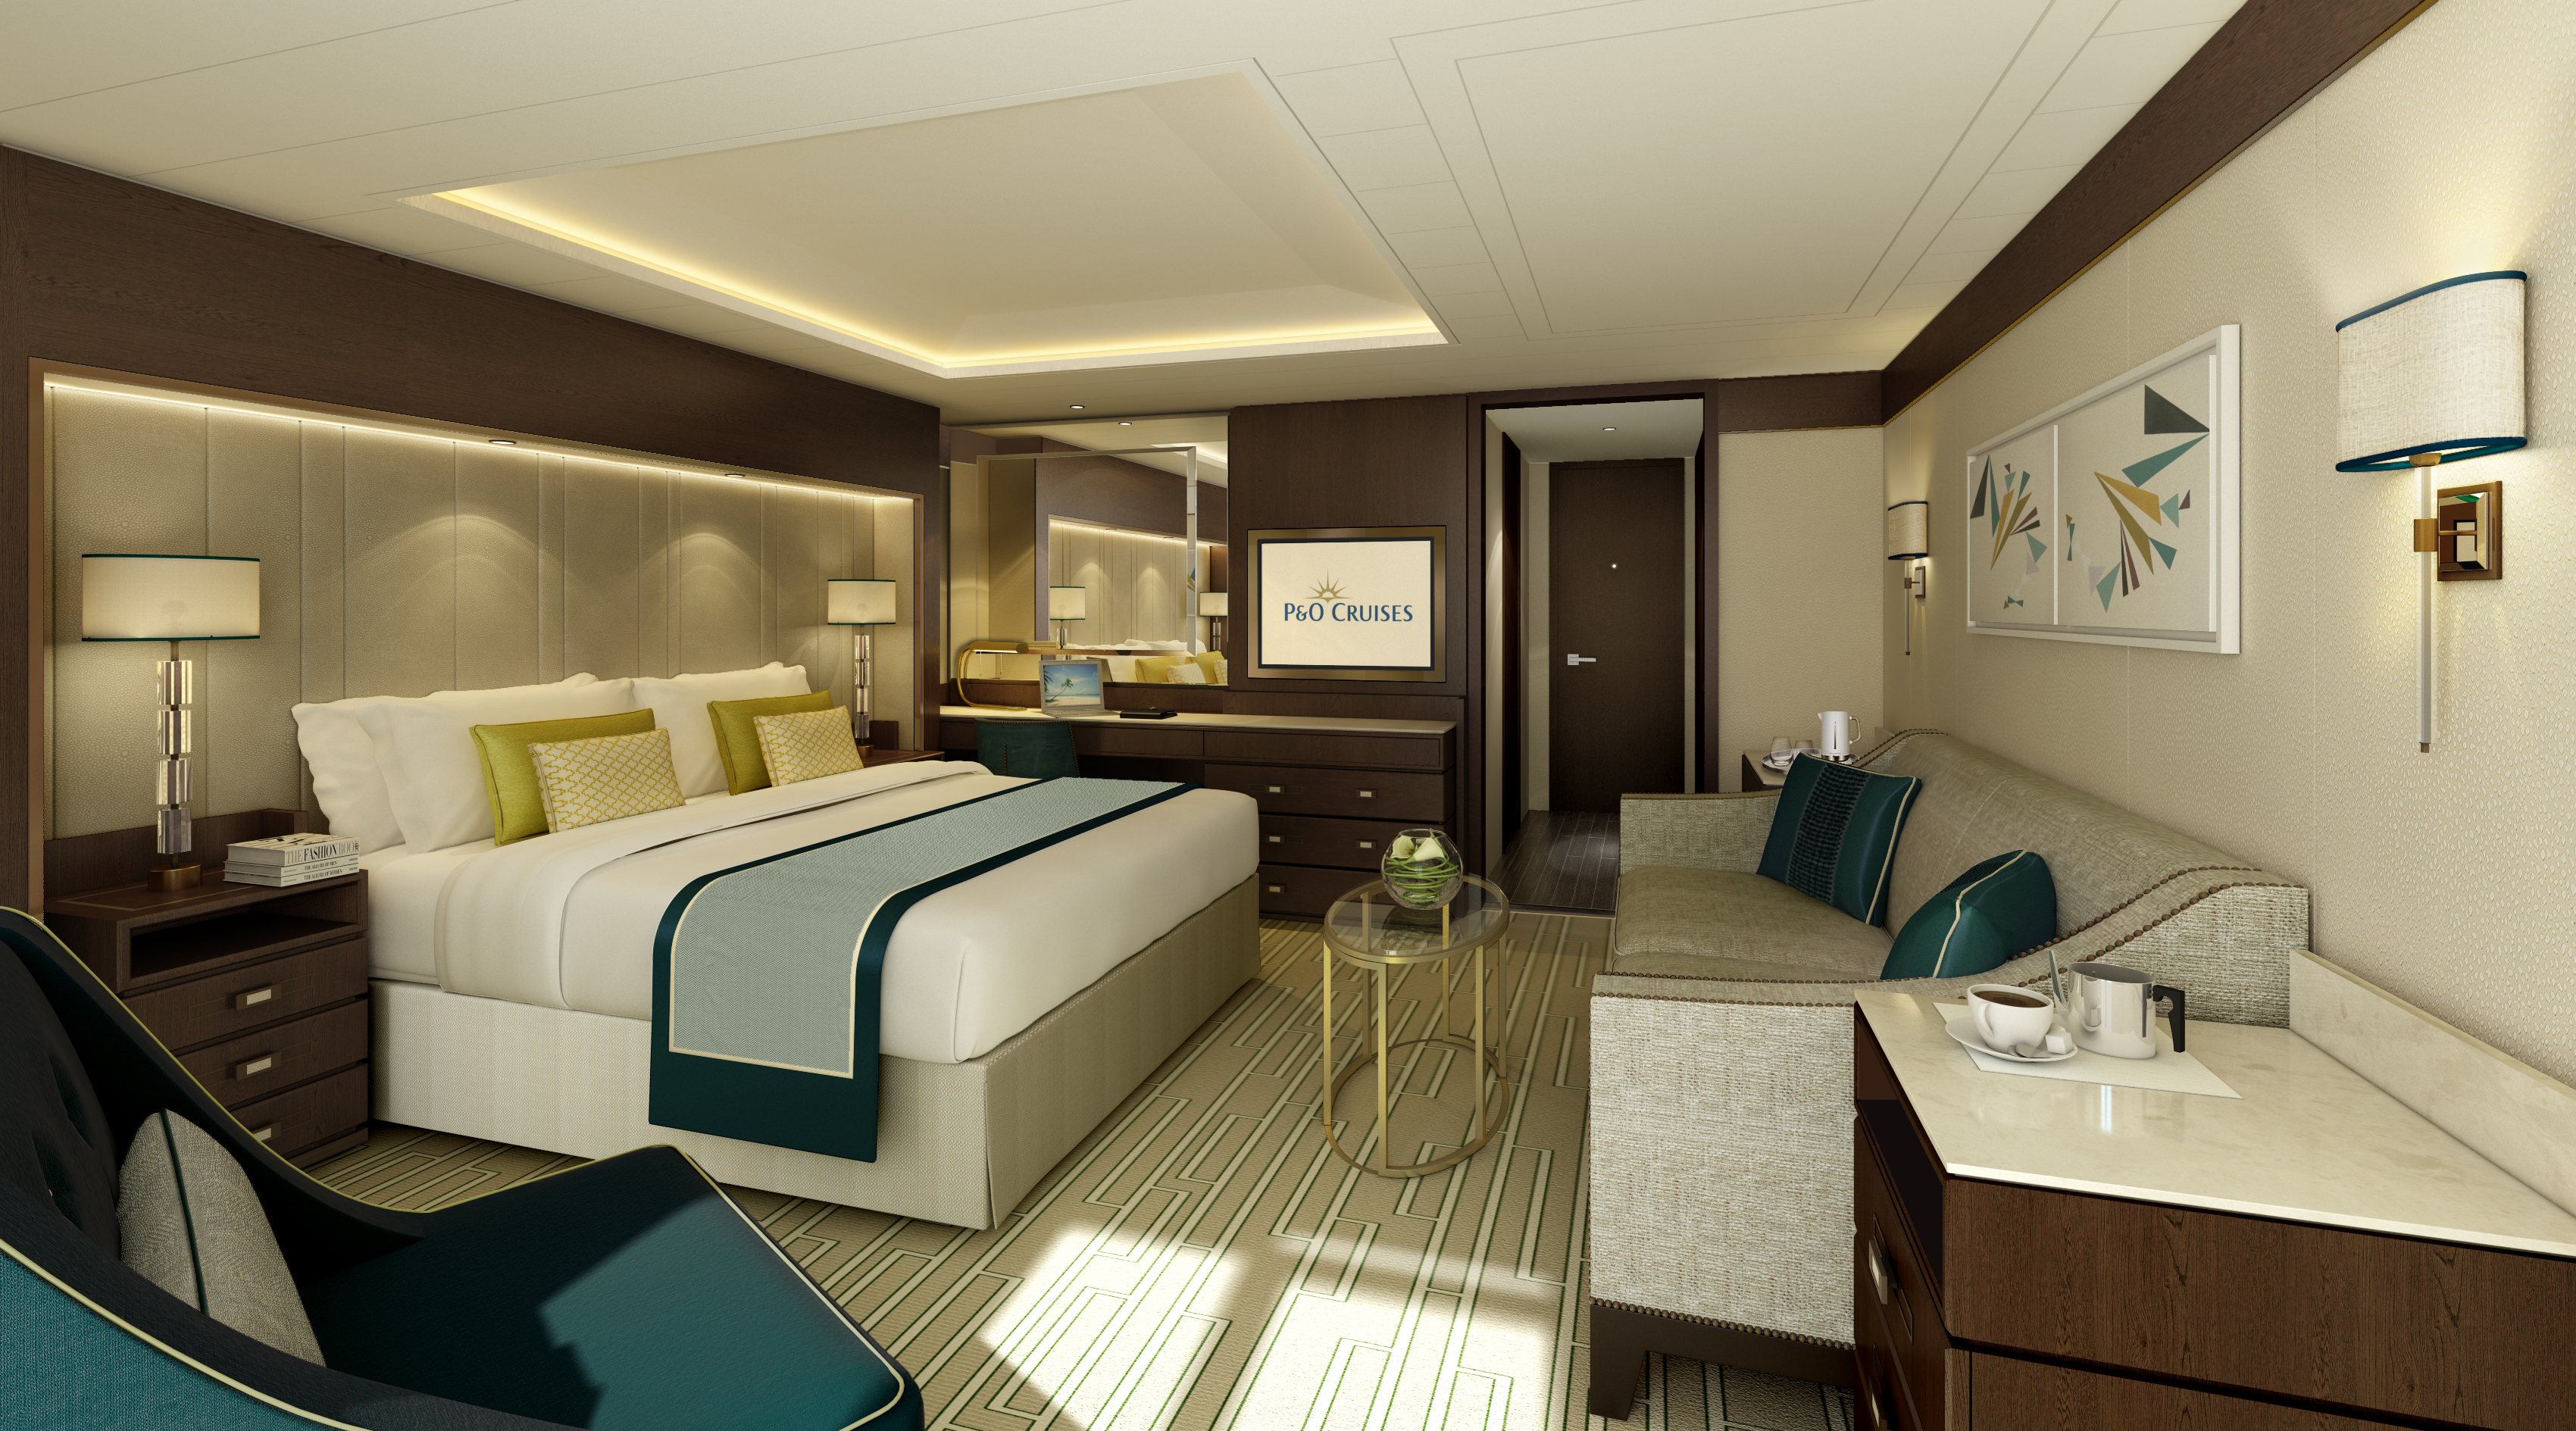 Take A Look Inside PampO Cruises Britannia NEW IMAGES